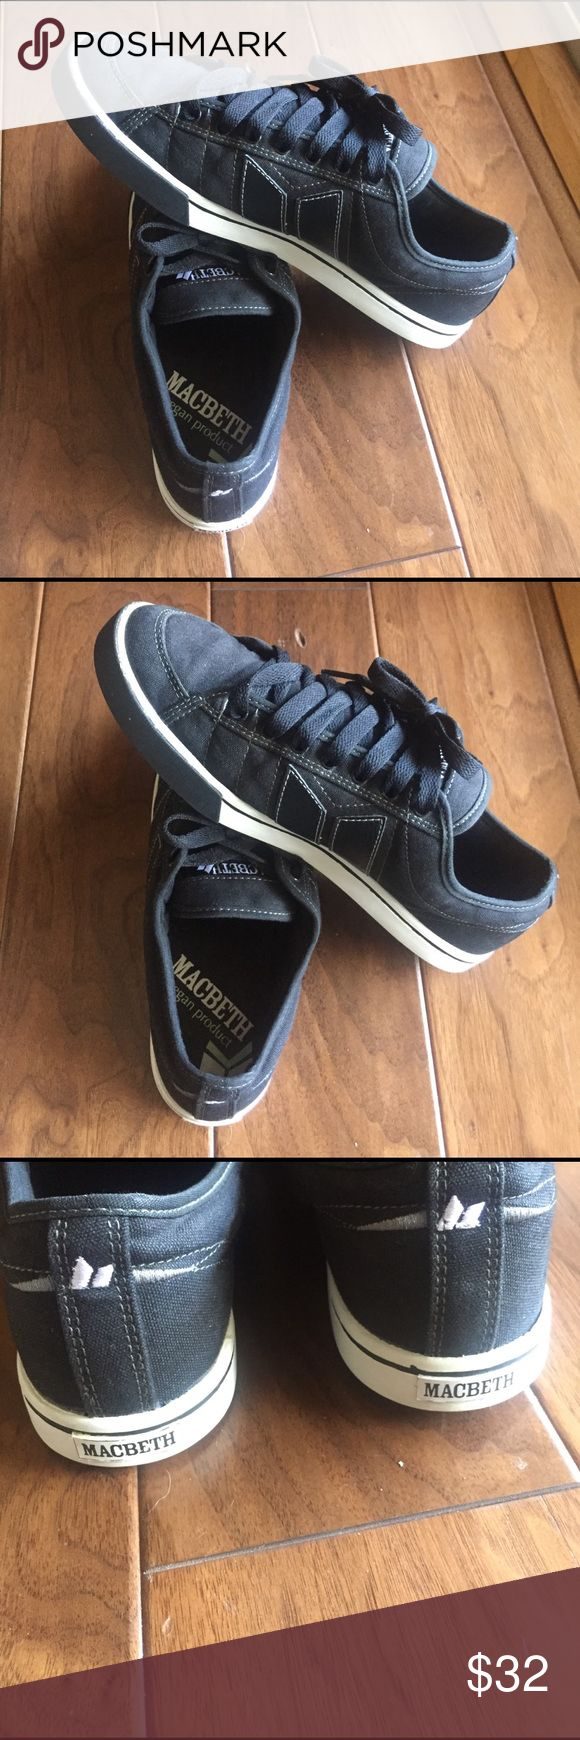 Macbeth men's size 11 shoes Macbeth black shoes. These are vegan shoes. Size 11.                                                                       EUC. Only worn a few times Shoes Sneakers